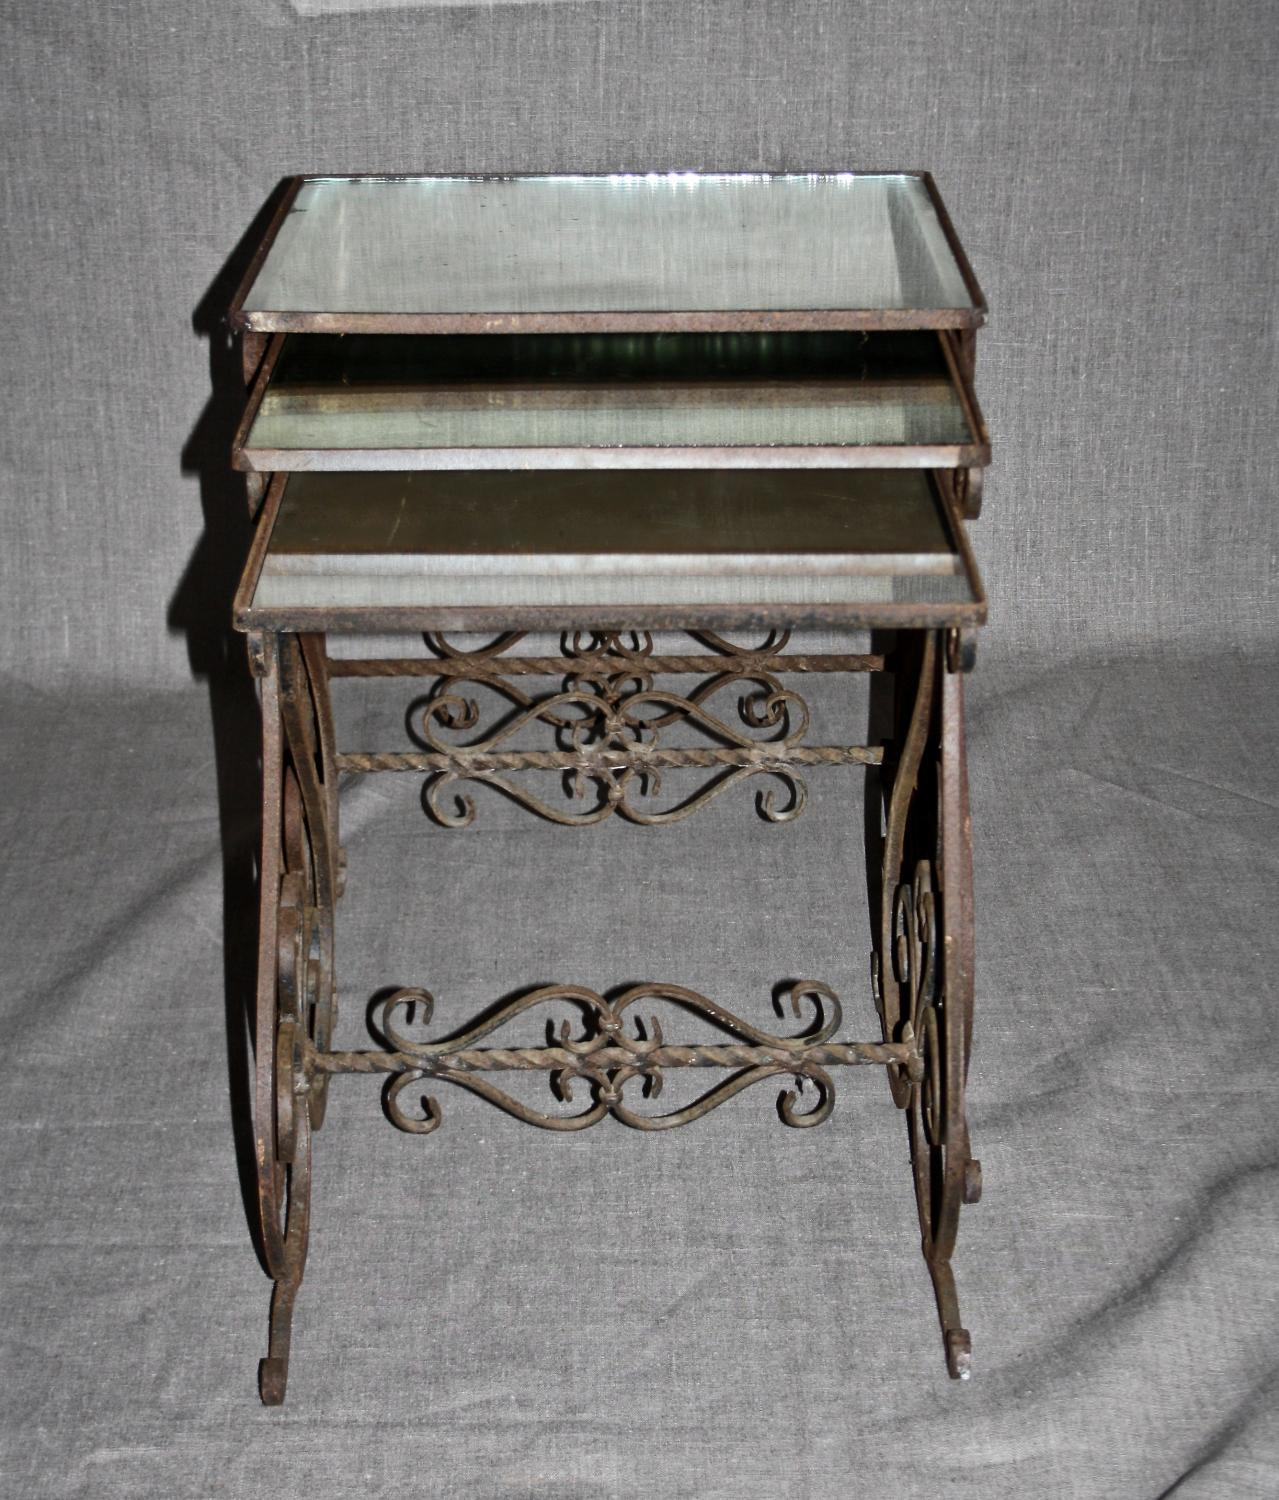 Nest of mirror top wrought iron tables